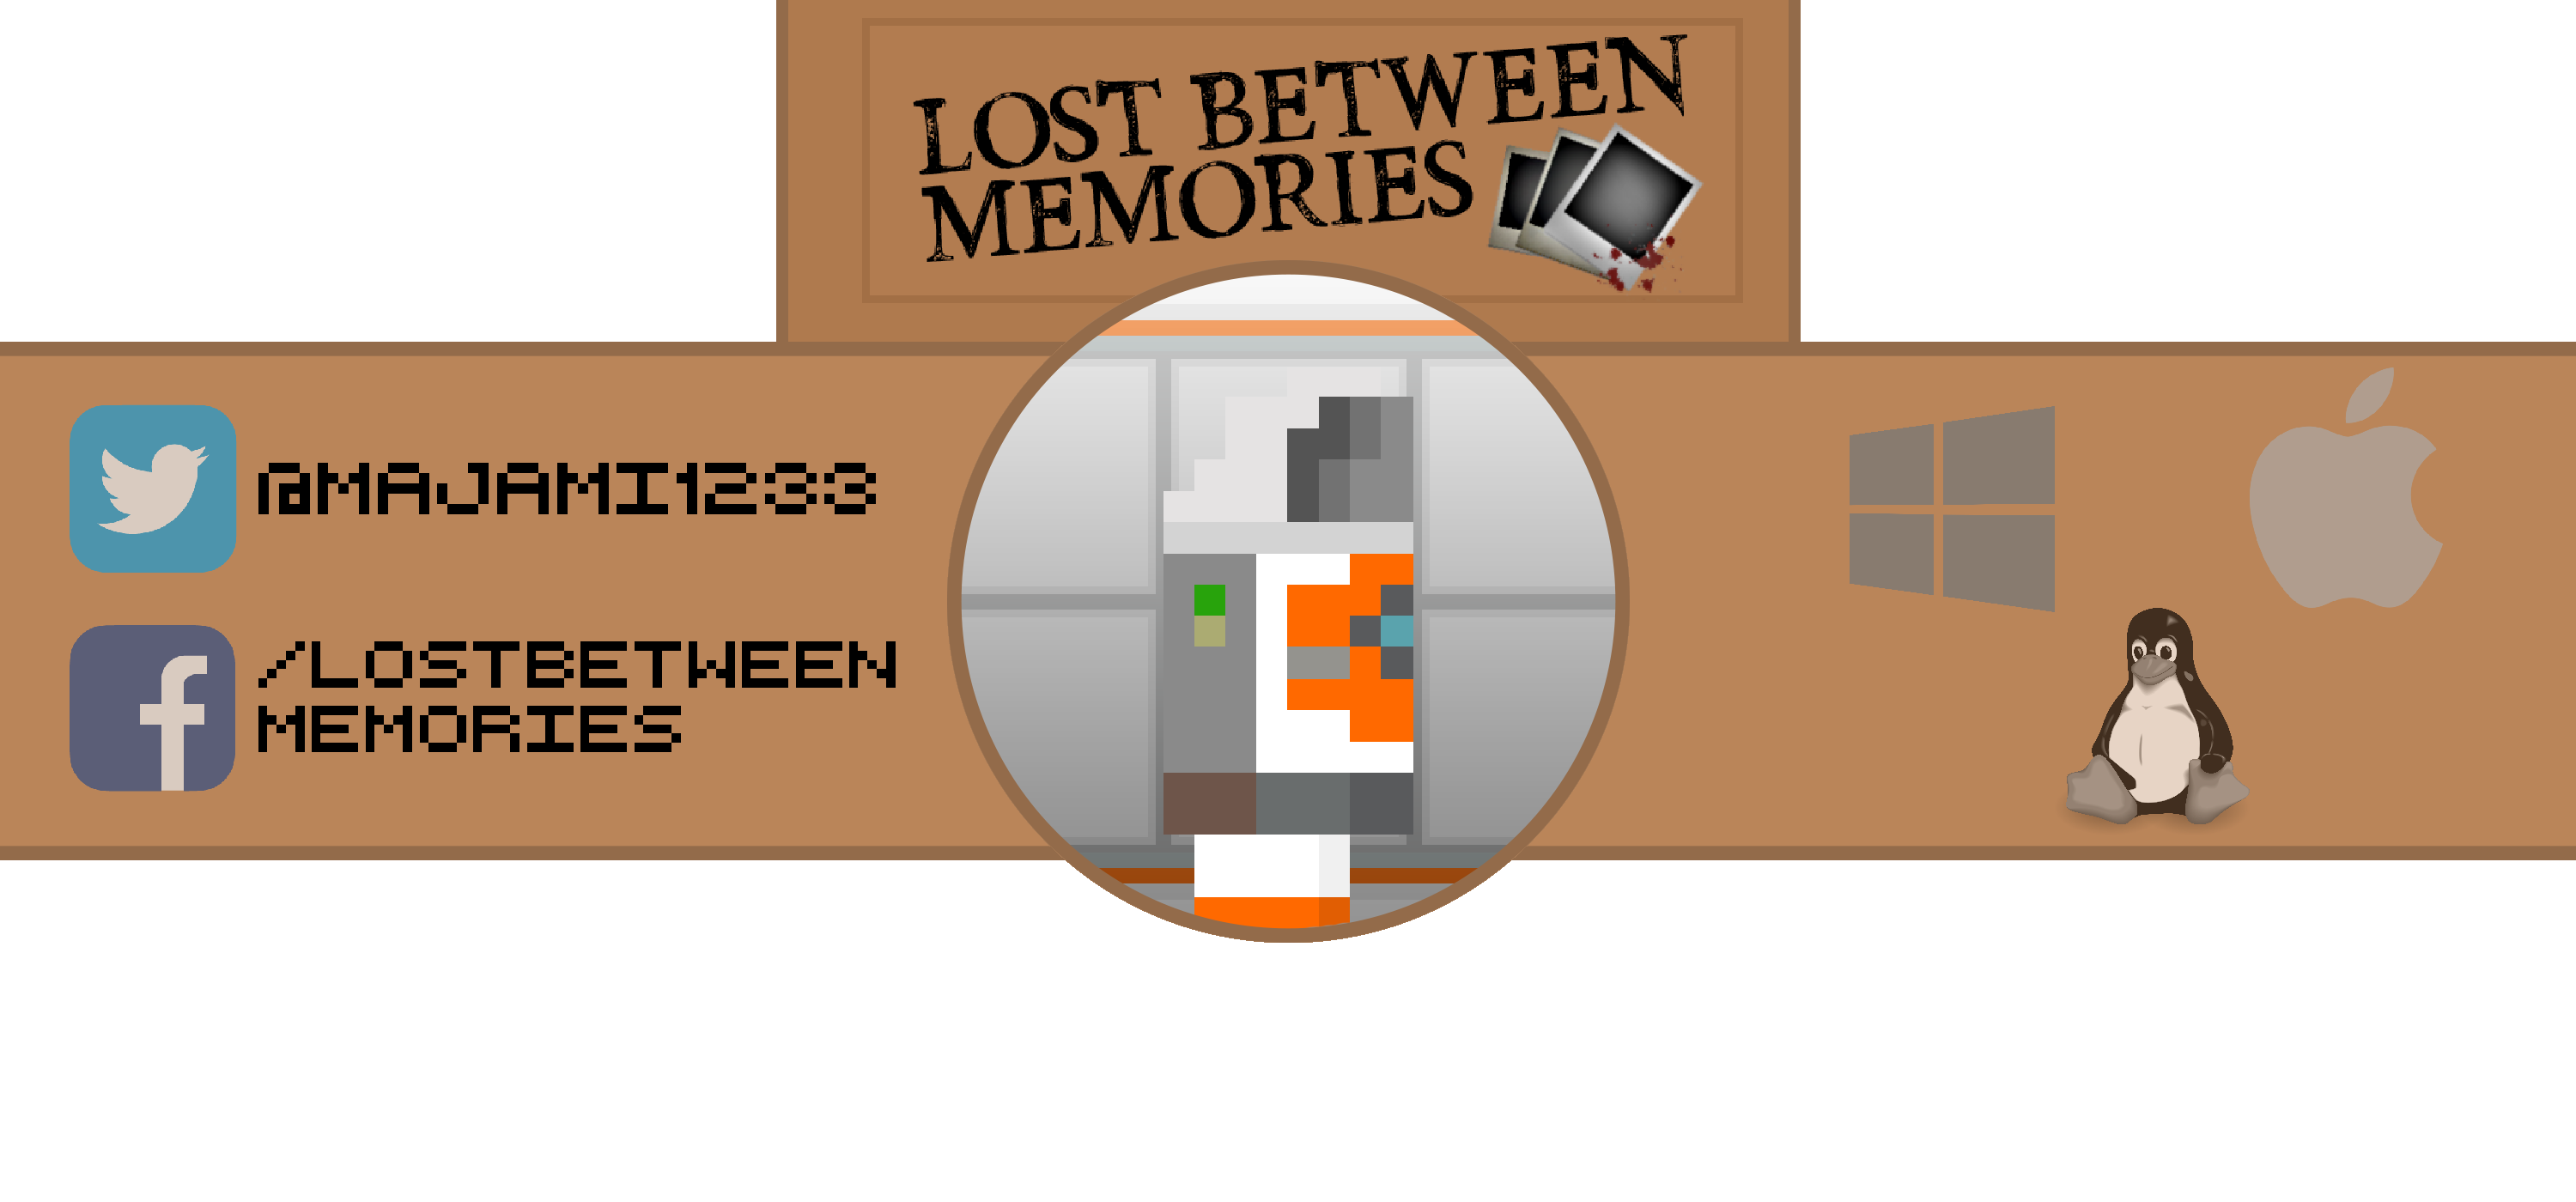 Lost Between Memories